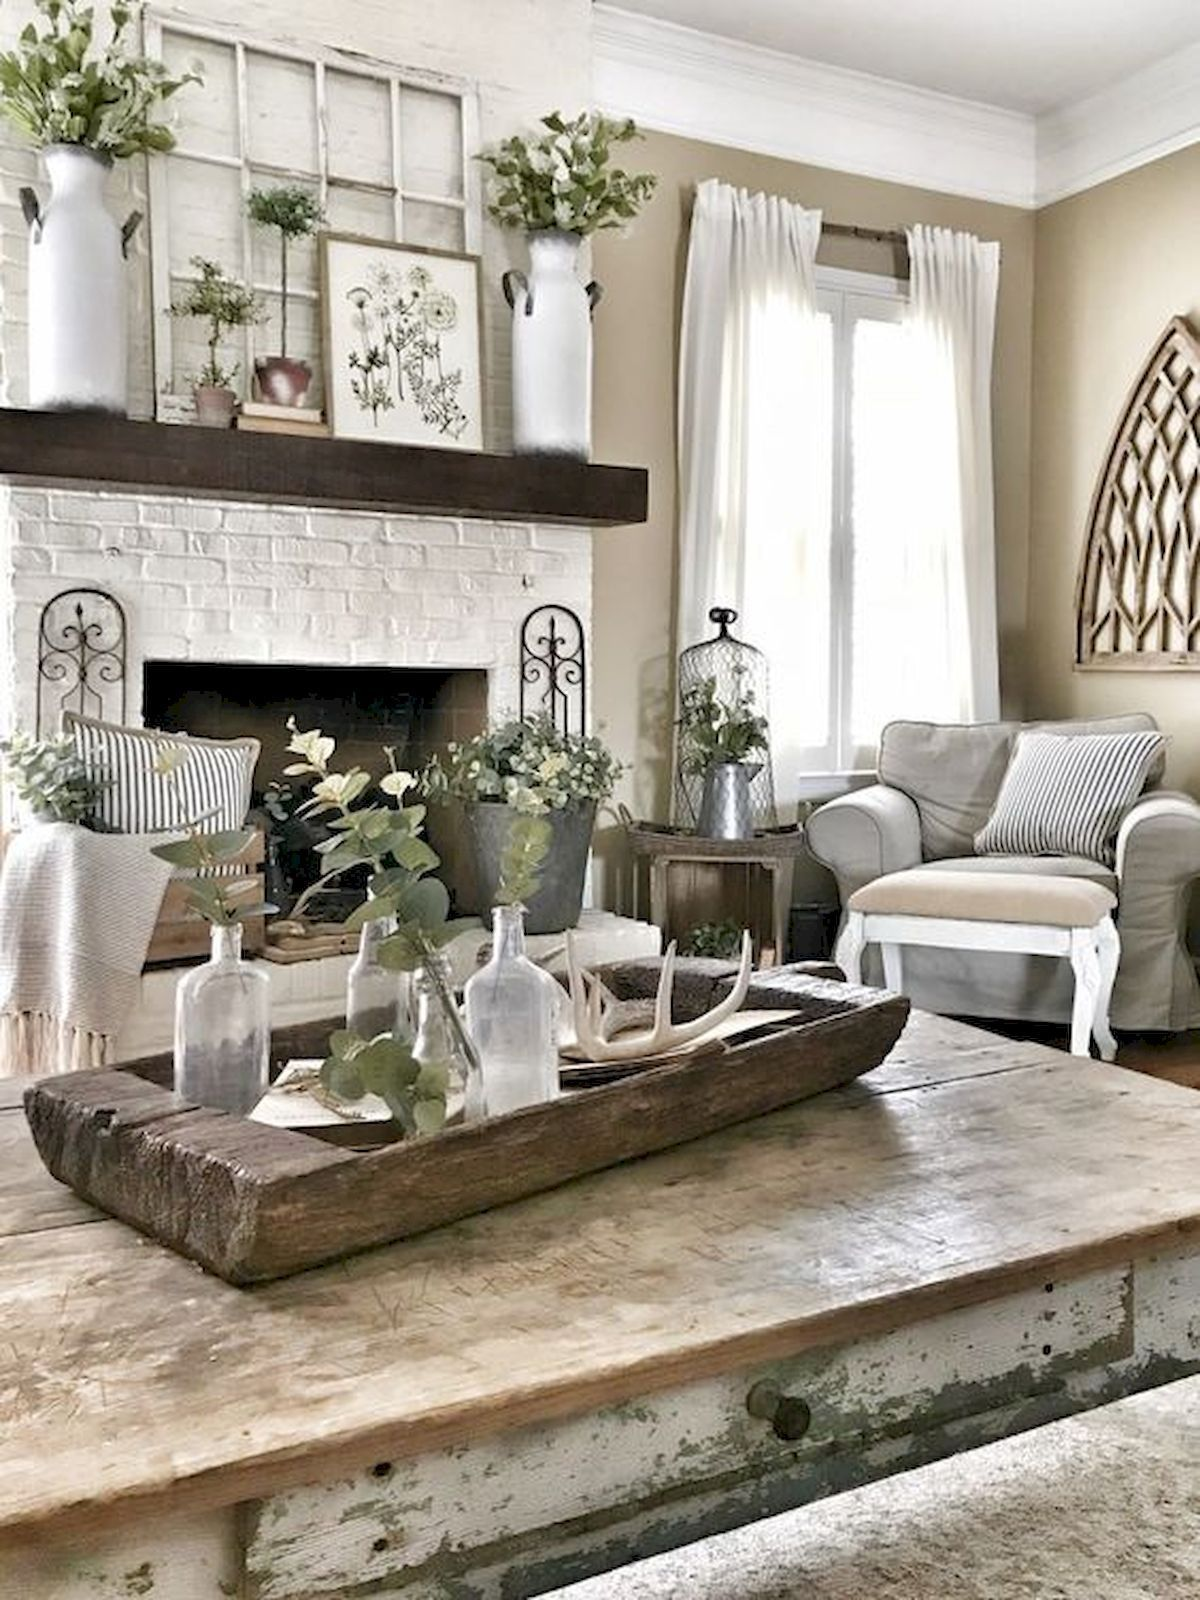 77 Wall Decorating Ideas For Living Room 2021 Farmhouse Decor Living Room Rustic Farmhouse Living Room Farm House Living Room Country style home decor living room